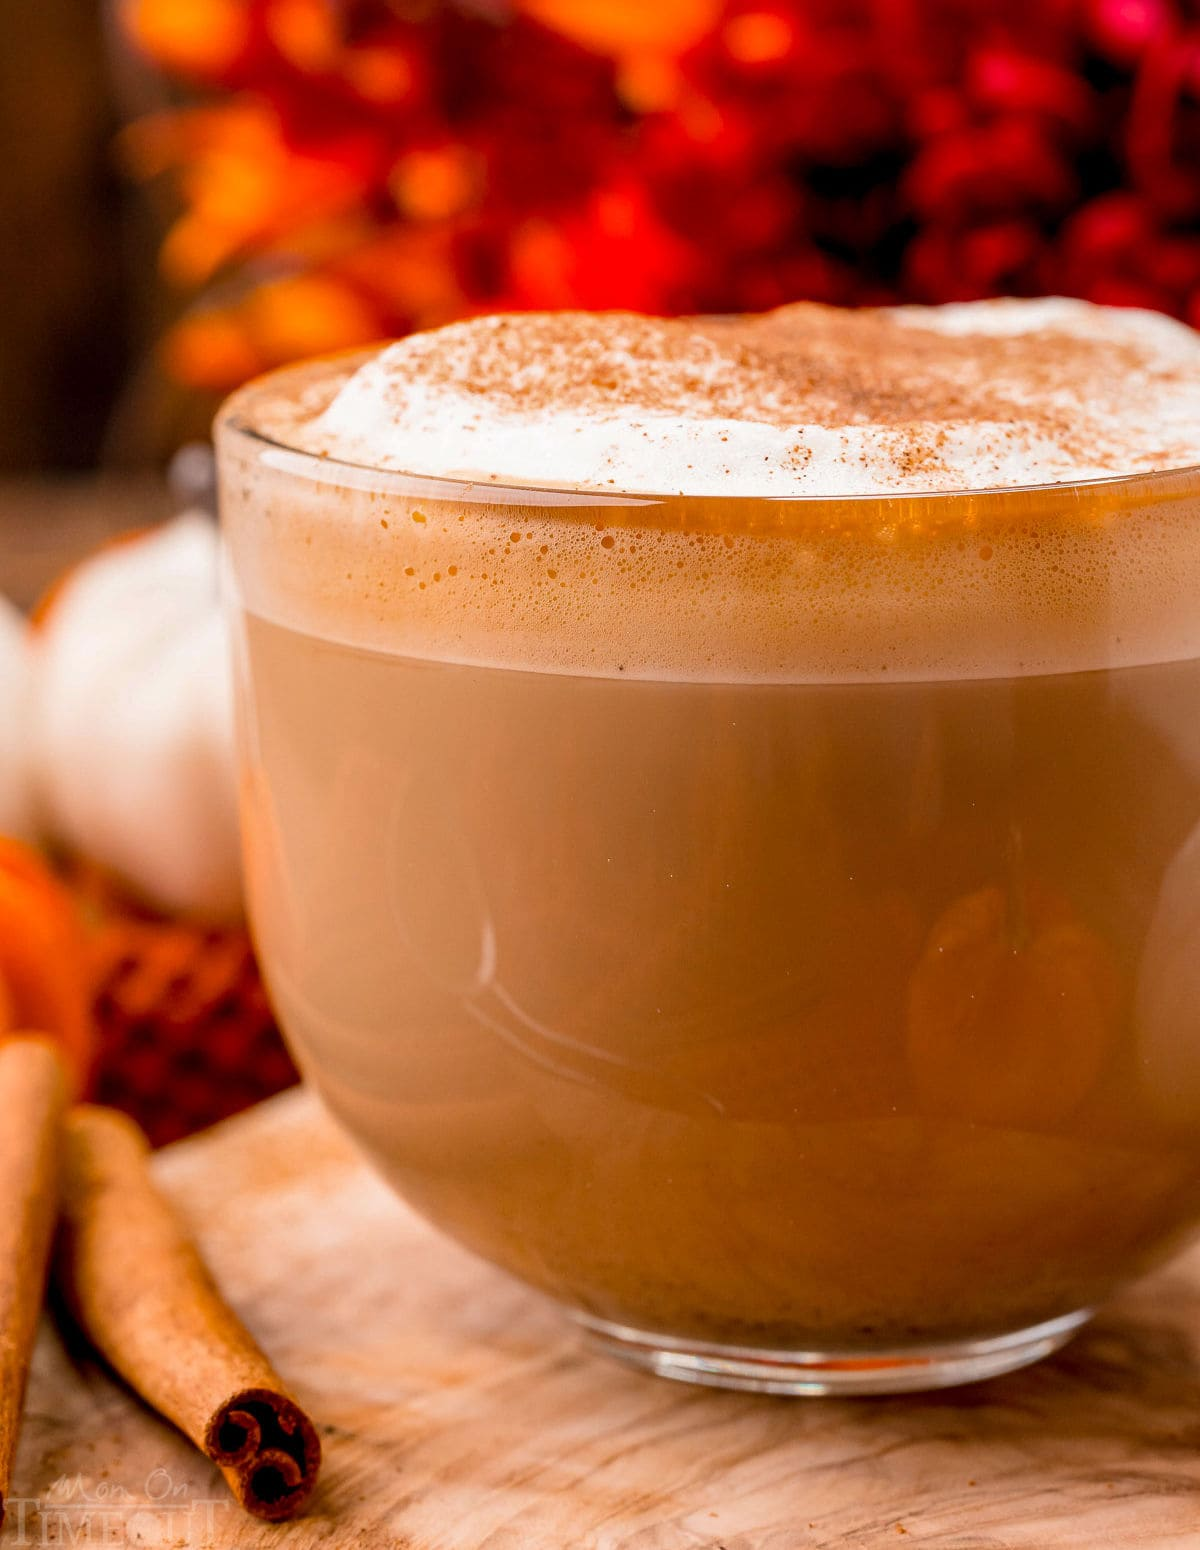 up close look at pumpkin spice latte made at home. Served in a glass mug and topped with frothed milk and pumpkin pie spice.